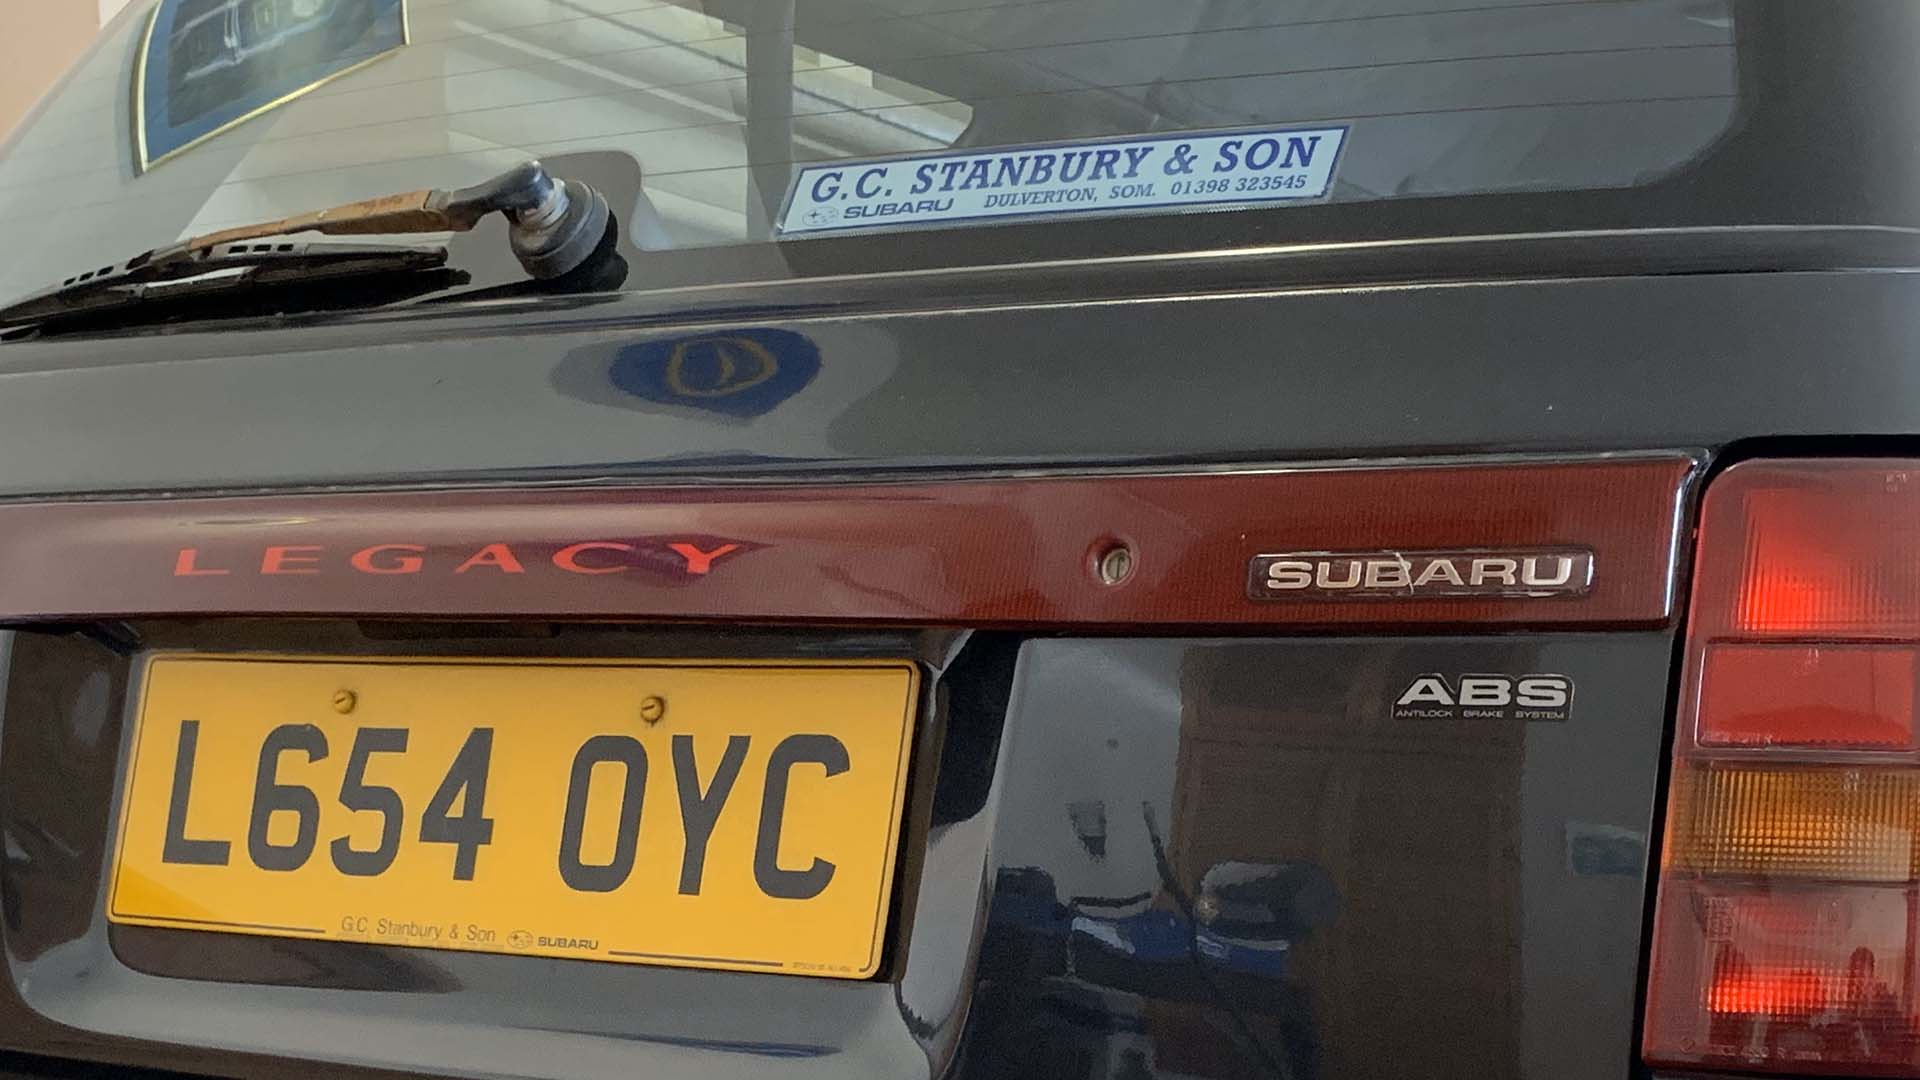 GC Stanbury car dealer sticker and plate